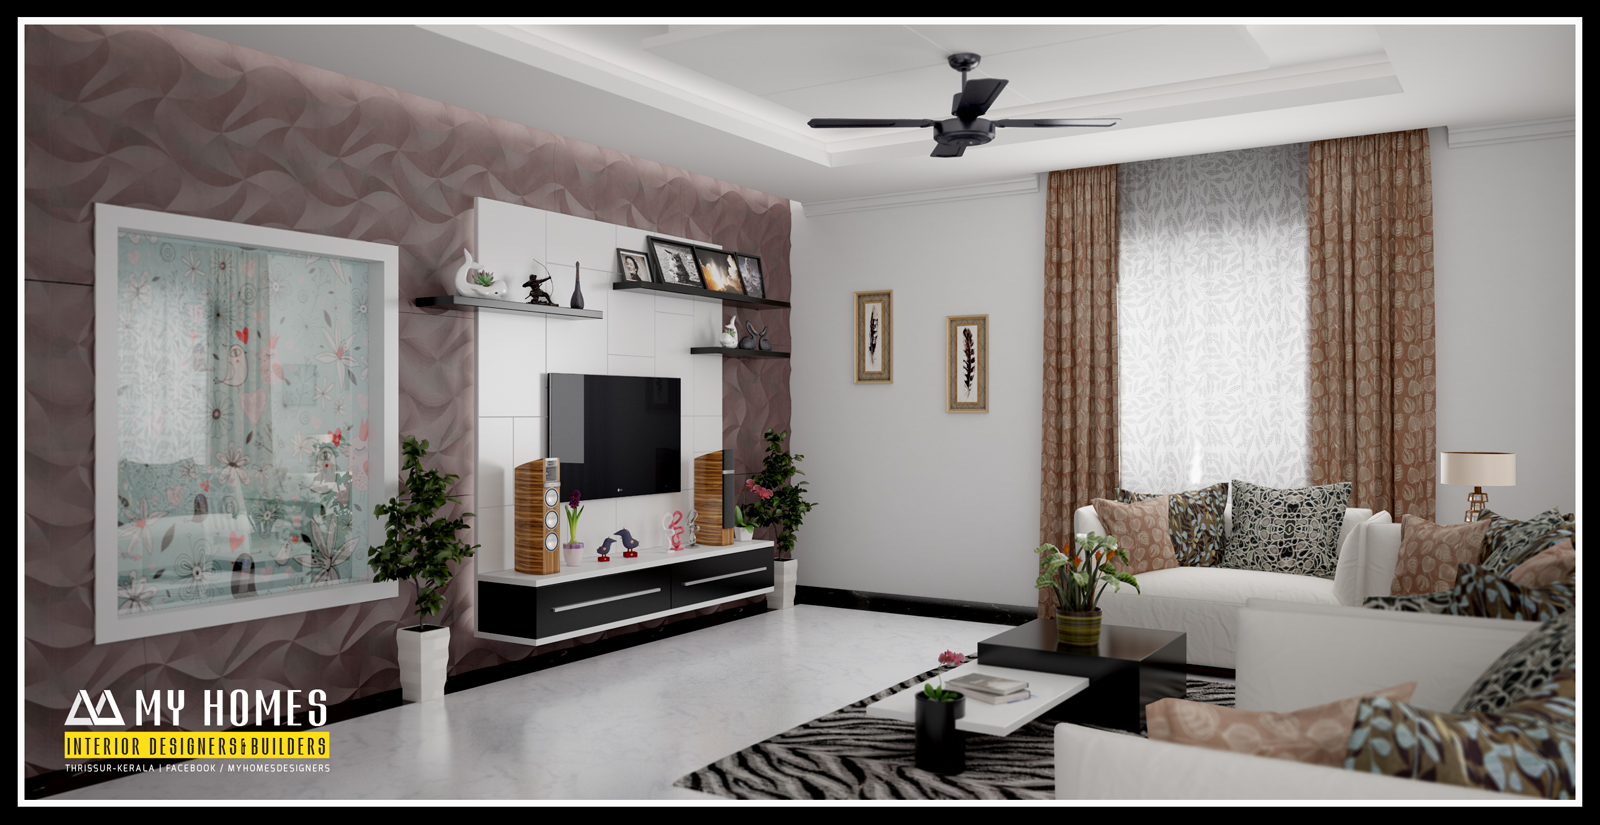 Kerala interior design ideas from designing company thrissur for Living room interiors designs photos